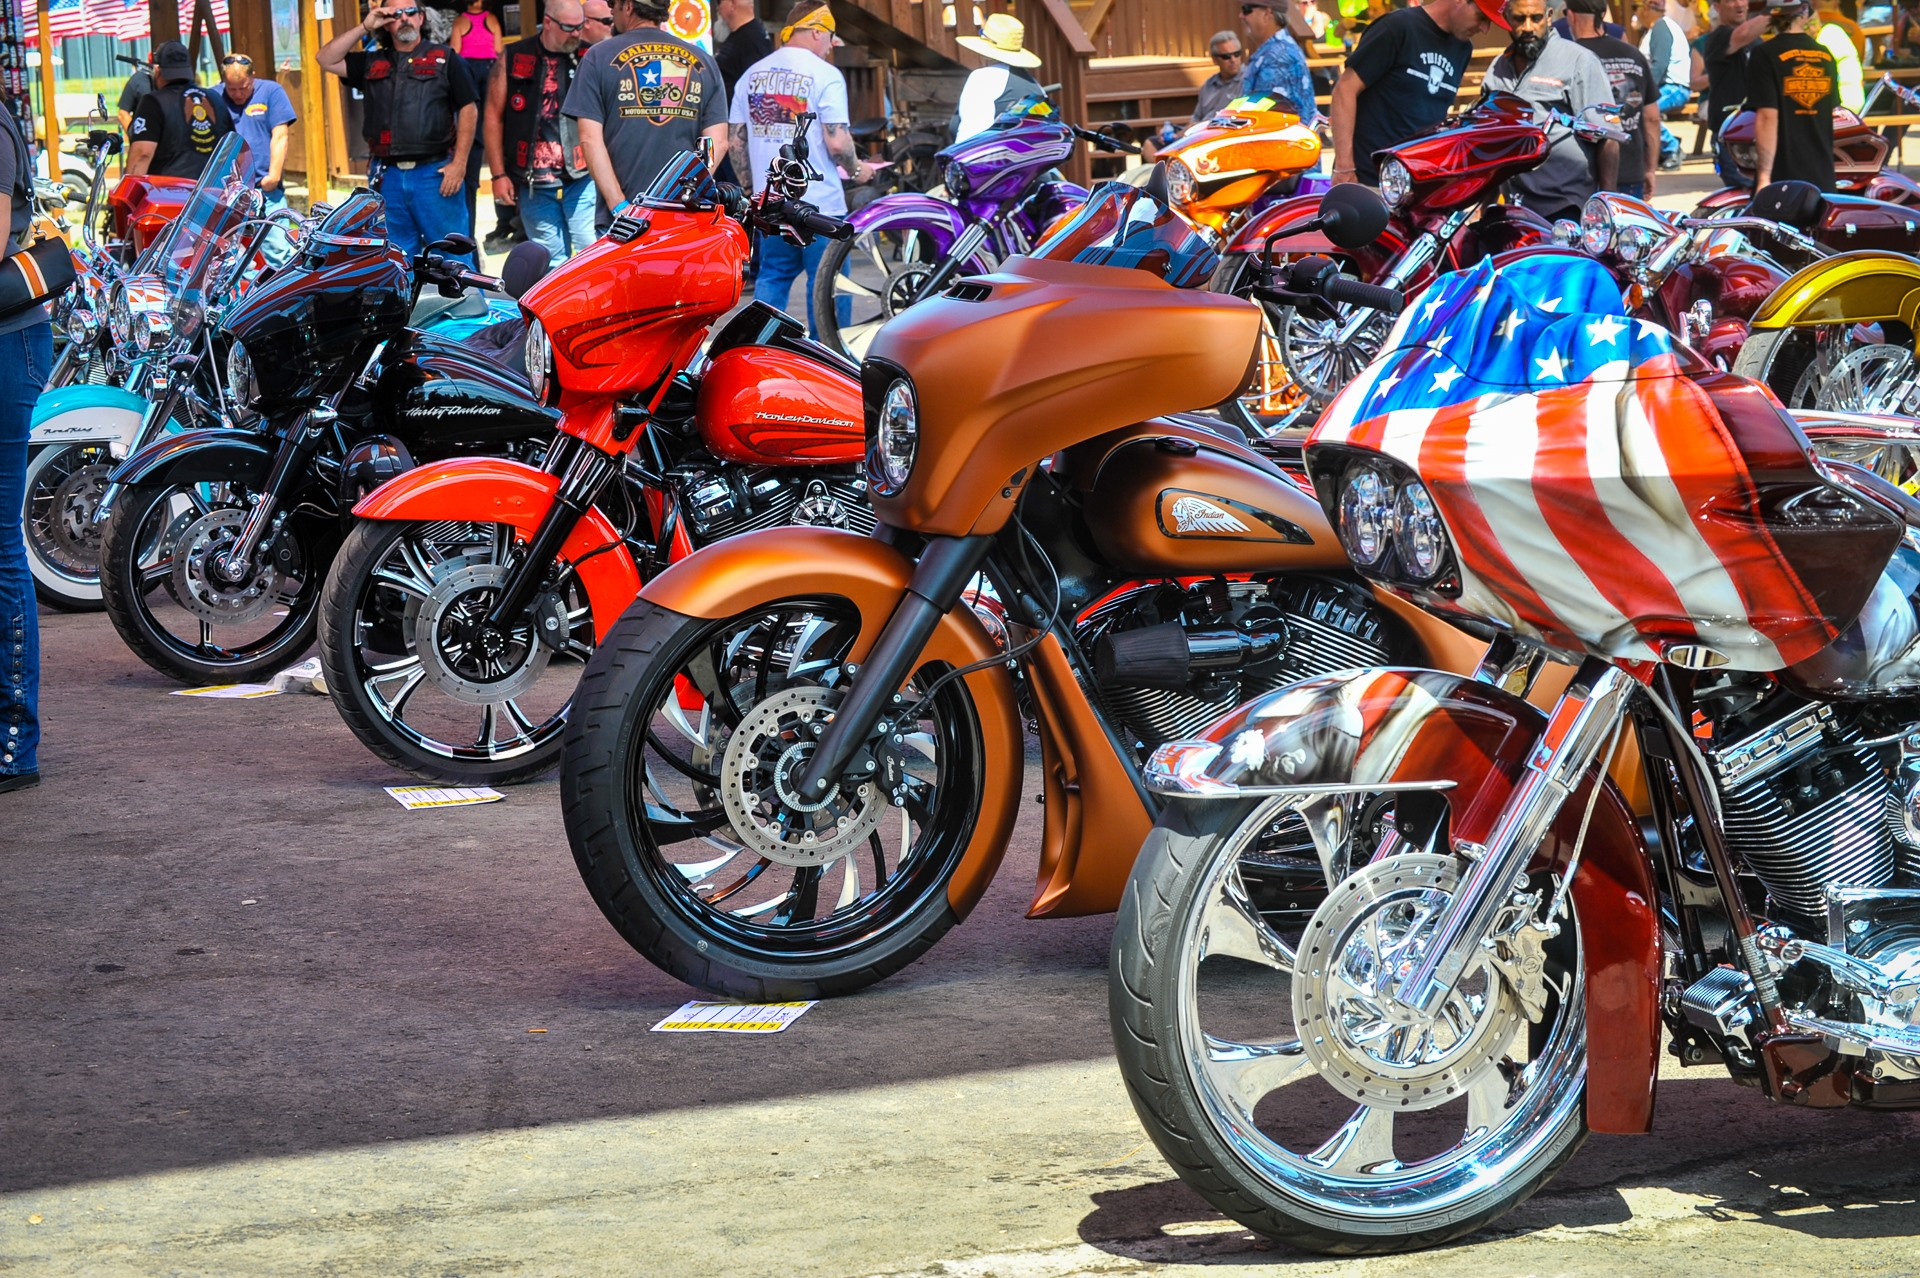 2020 Sturgis Rally Is On - Buffalo Chip